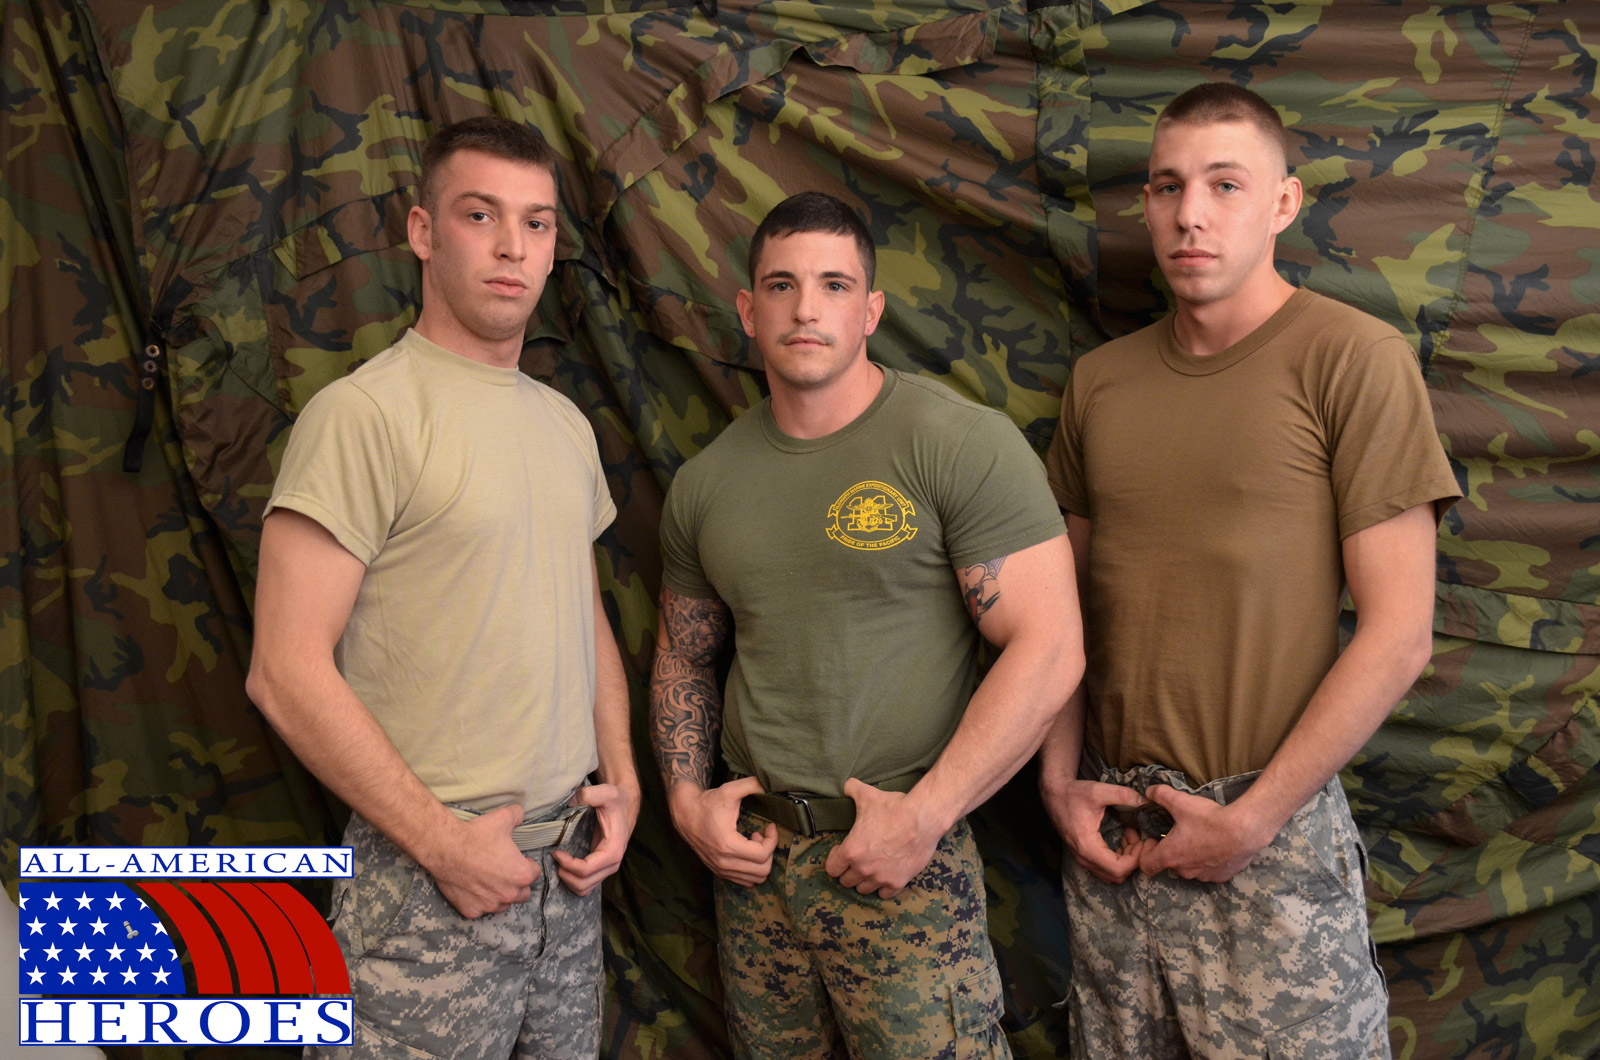 All-American-Heroes-Sergeant-Slate-Triple-fucking-big-cocks-Army-guys-Amateur-Gay-Porn-01 Two Real Army Privates Fuck Their Muscle Sergeant and Cum In His Mouth